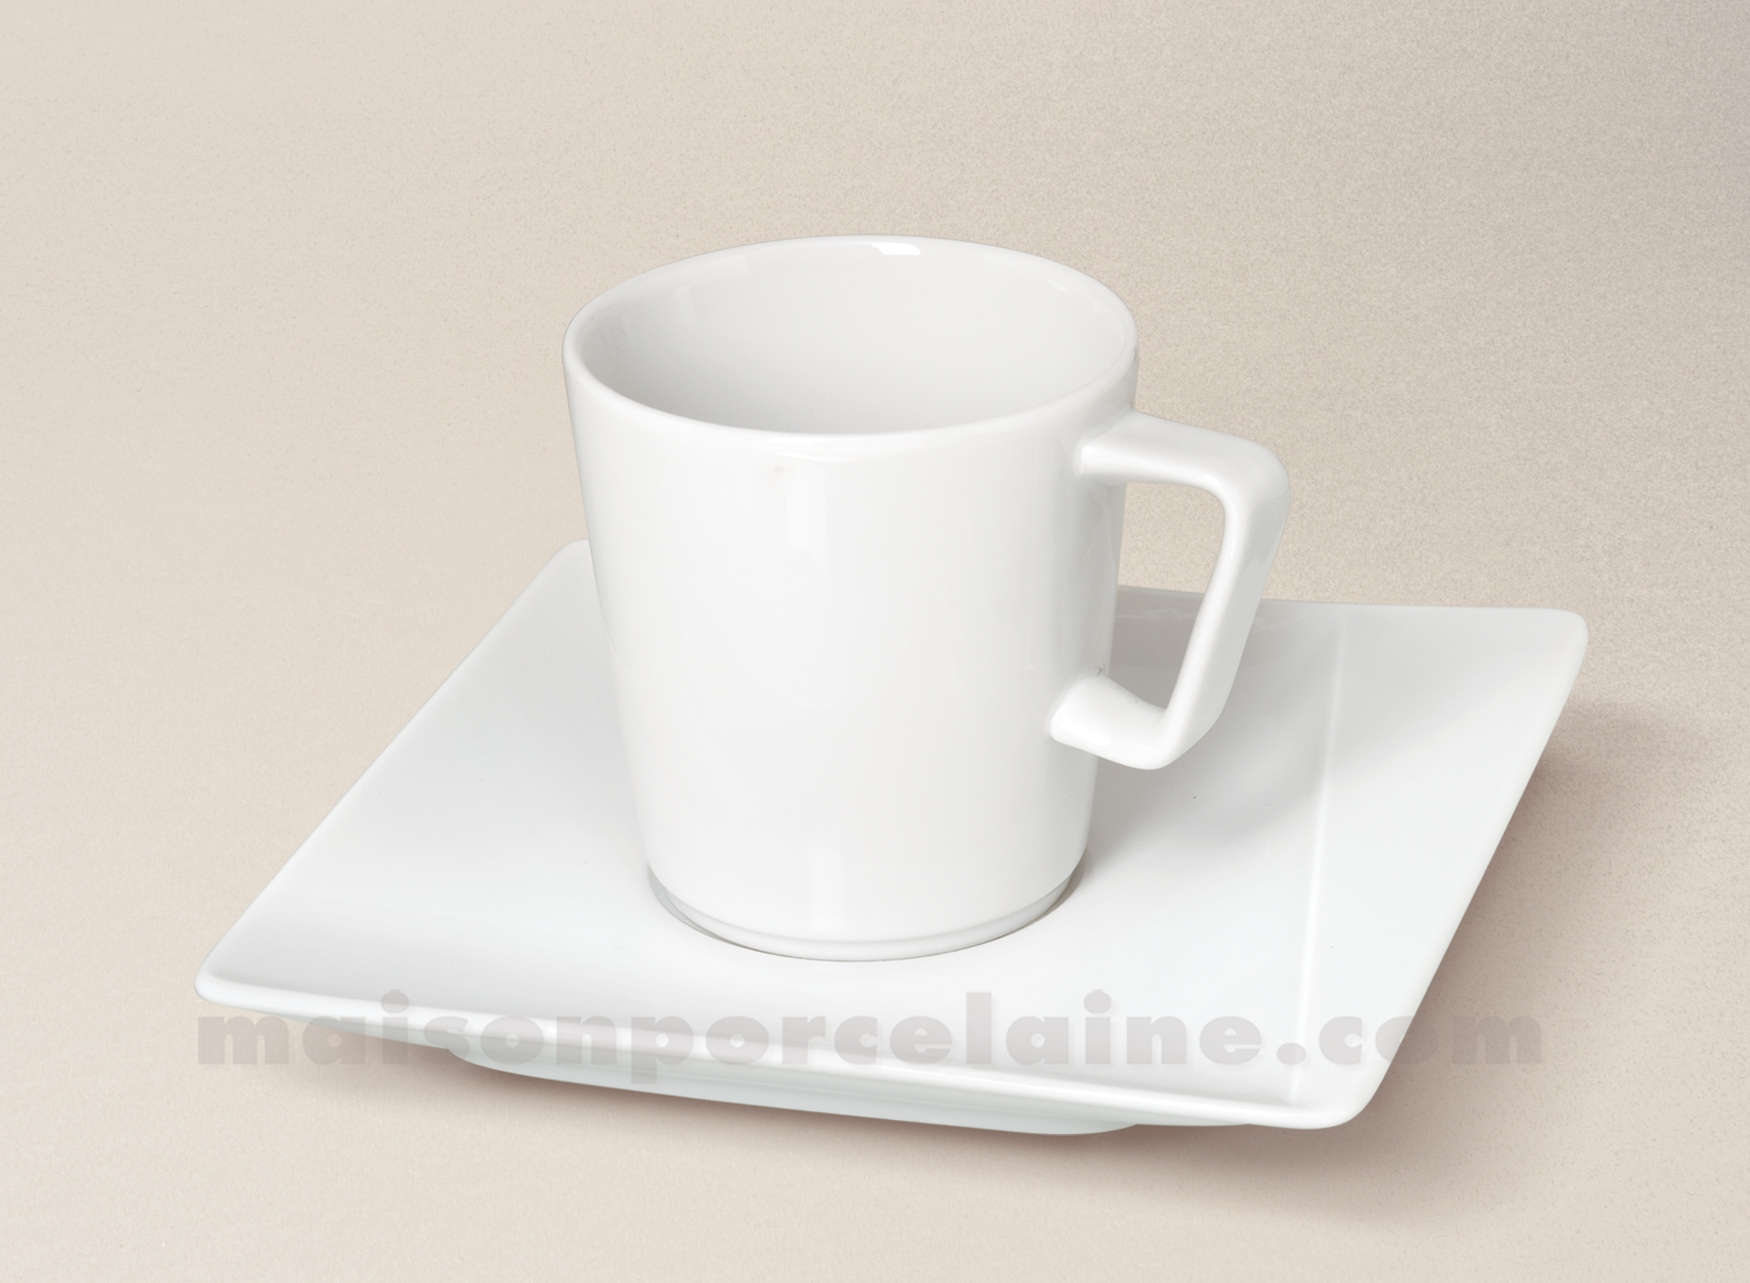 Tasse The Soucoupe Carree Porcelaine Blanche Kheops 19cl